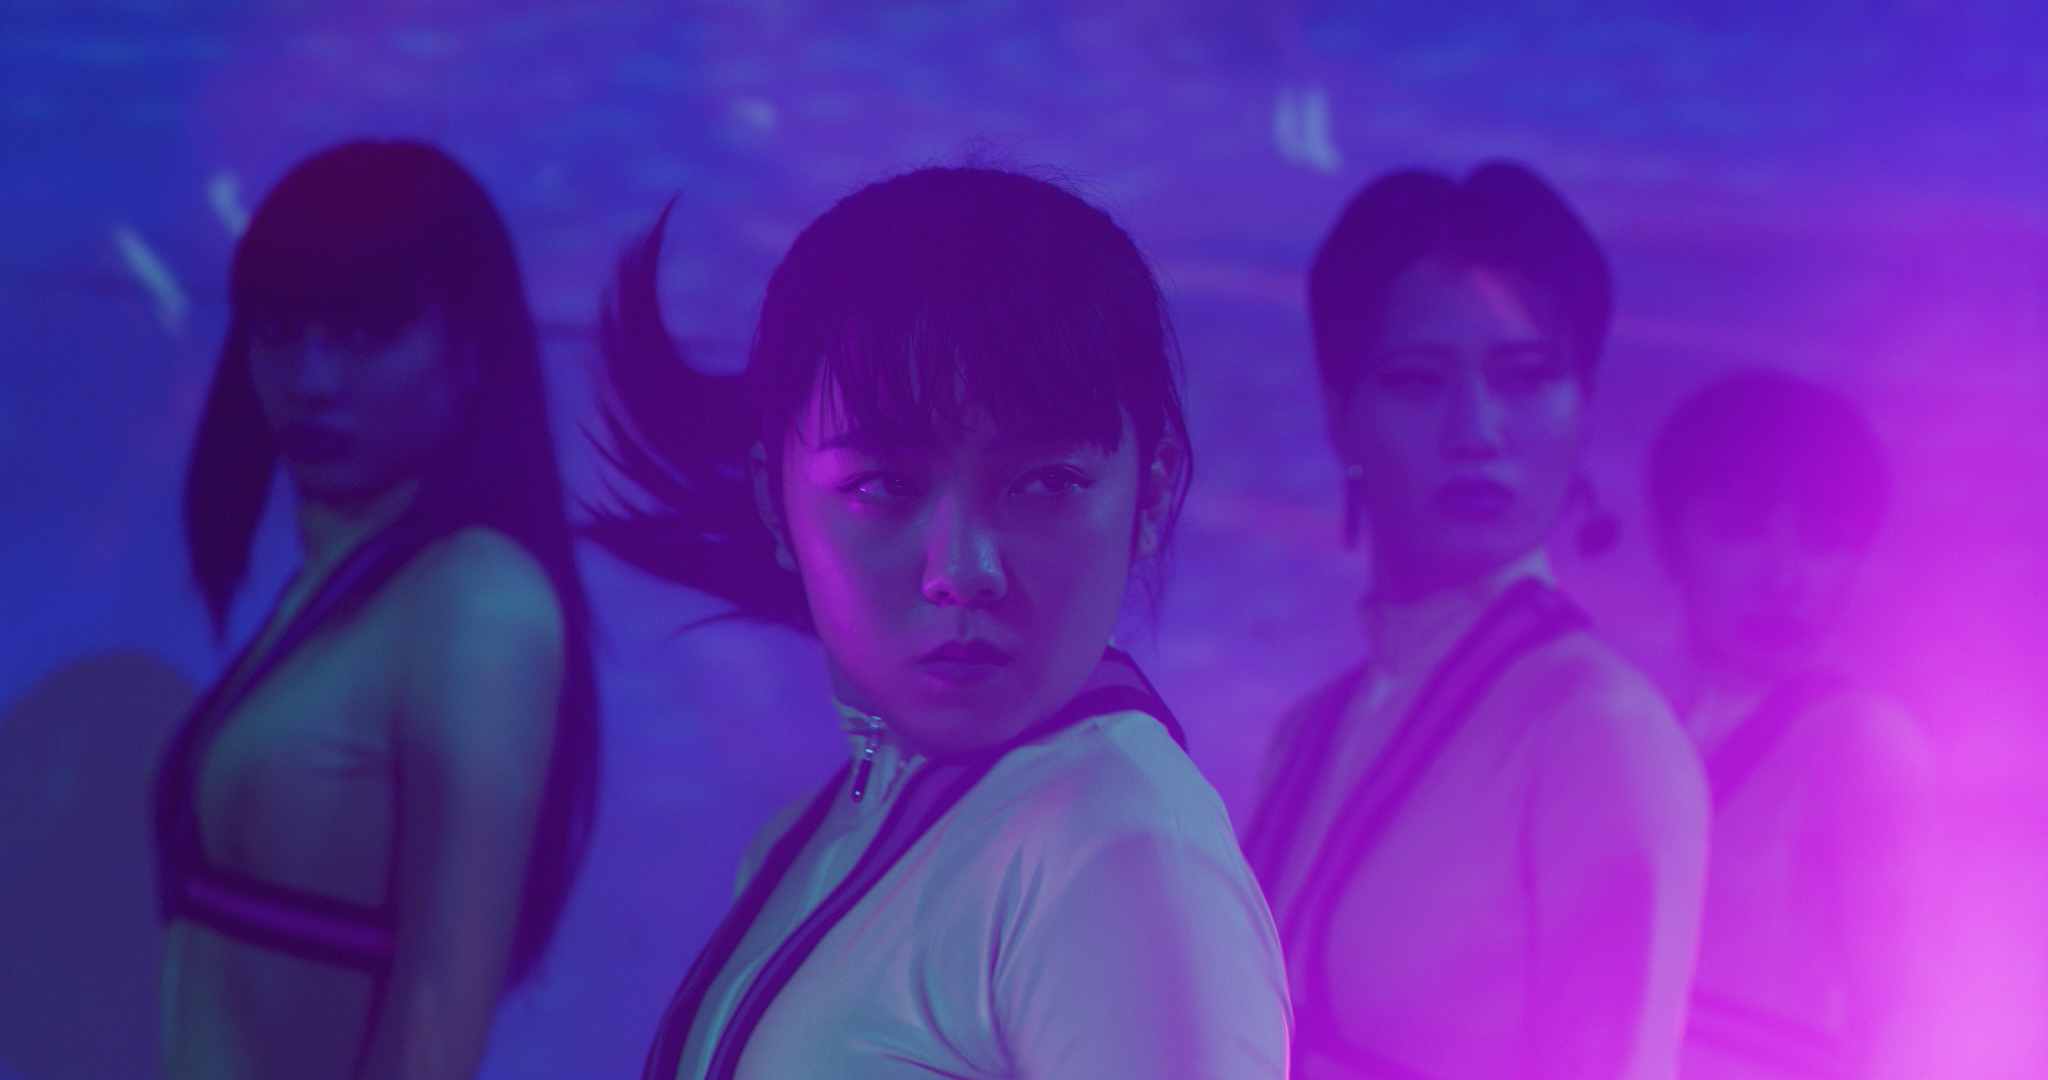 Several Japanese girls performing a dance. Yume is in focus in the middle, with her brunette hair tied up and worn in bangs.